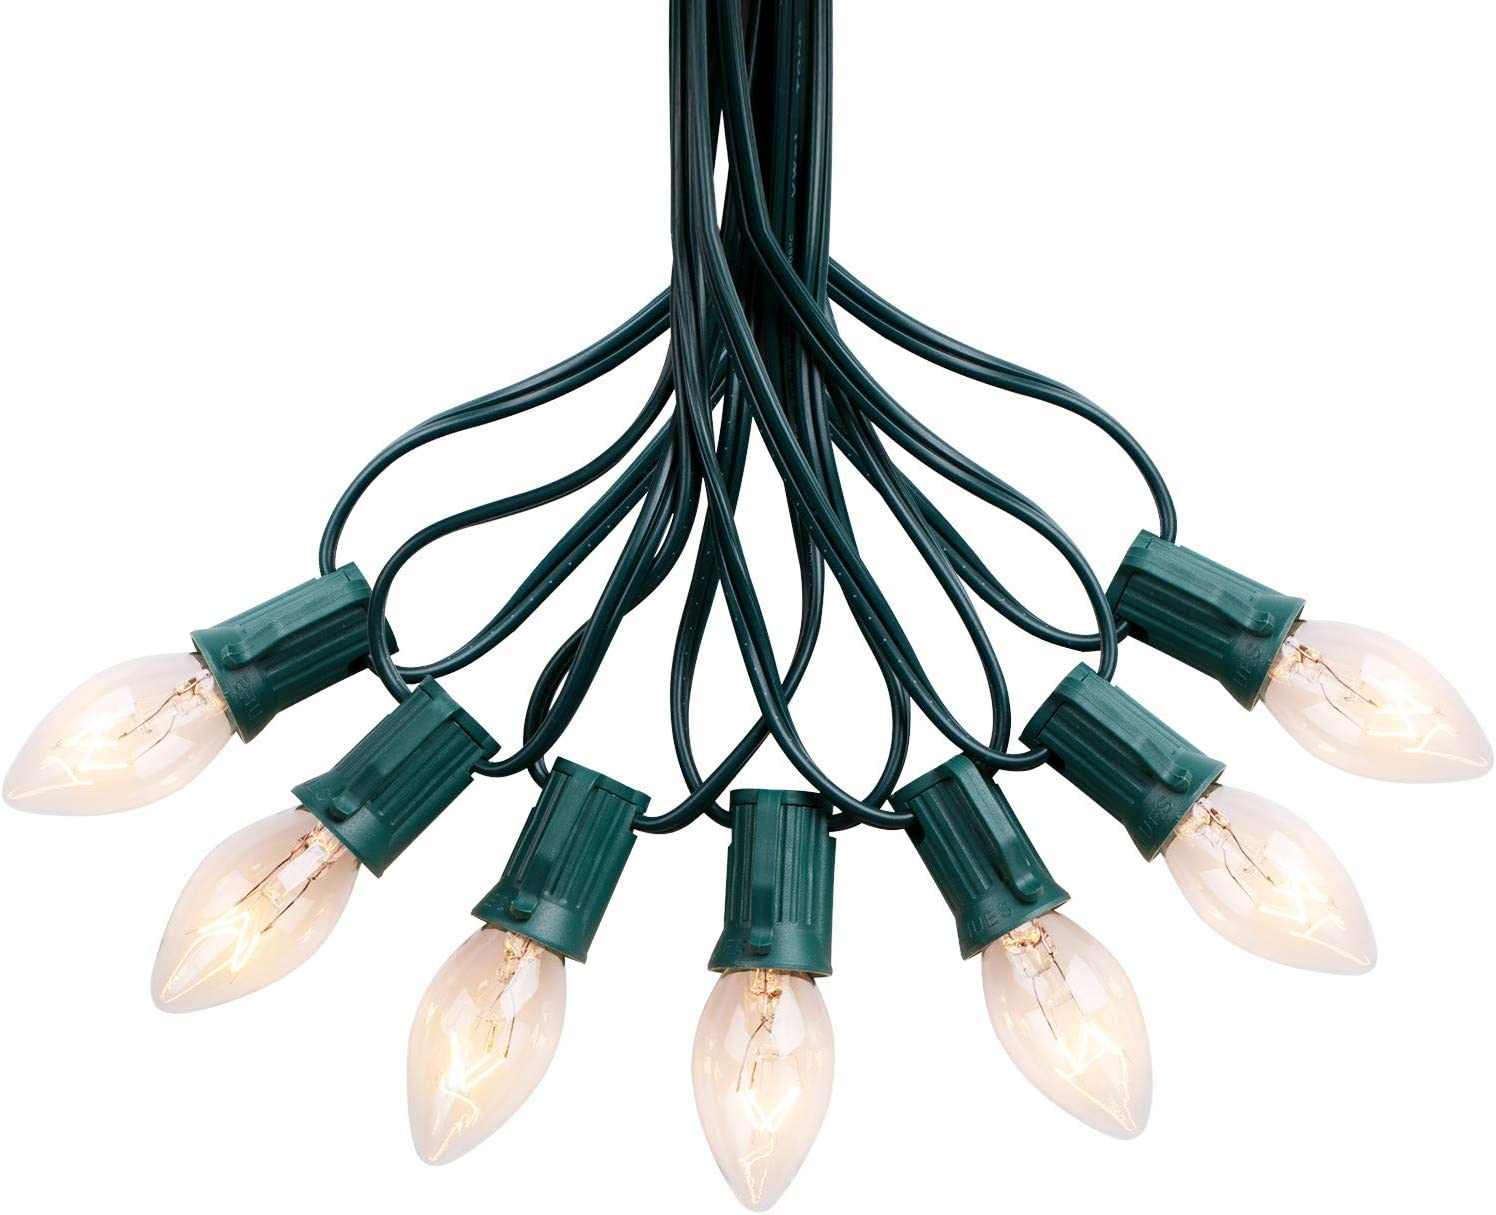 50FT C7 String Lights Outdoor UL Listed Hanging Lights for Christmas Garden Patio Backyard Cafe Party Room Decoration, Green Wire, 50 Bulbs